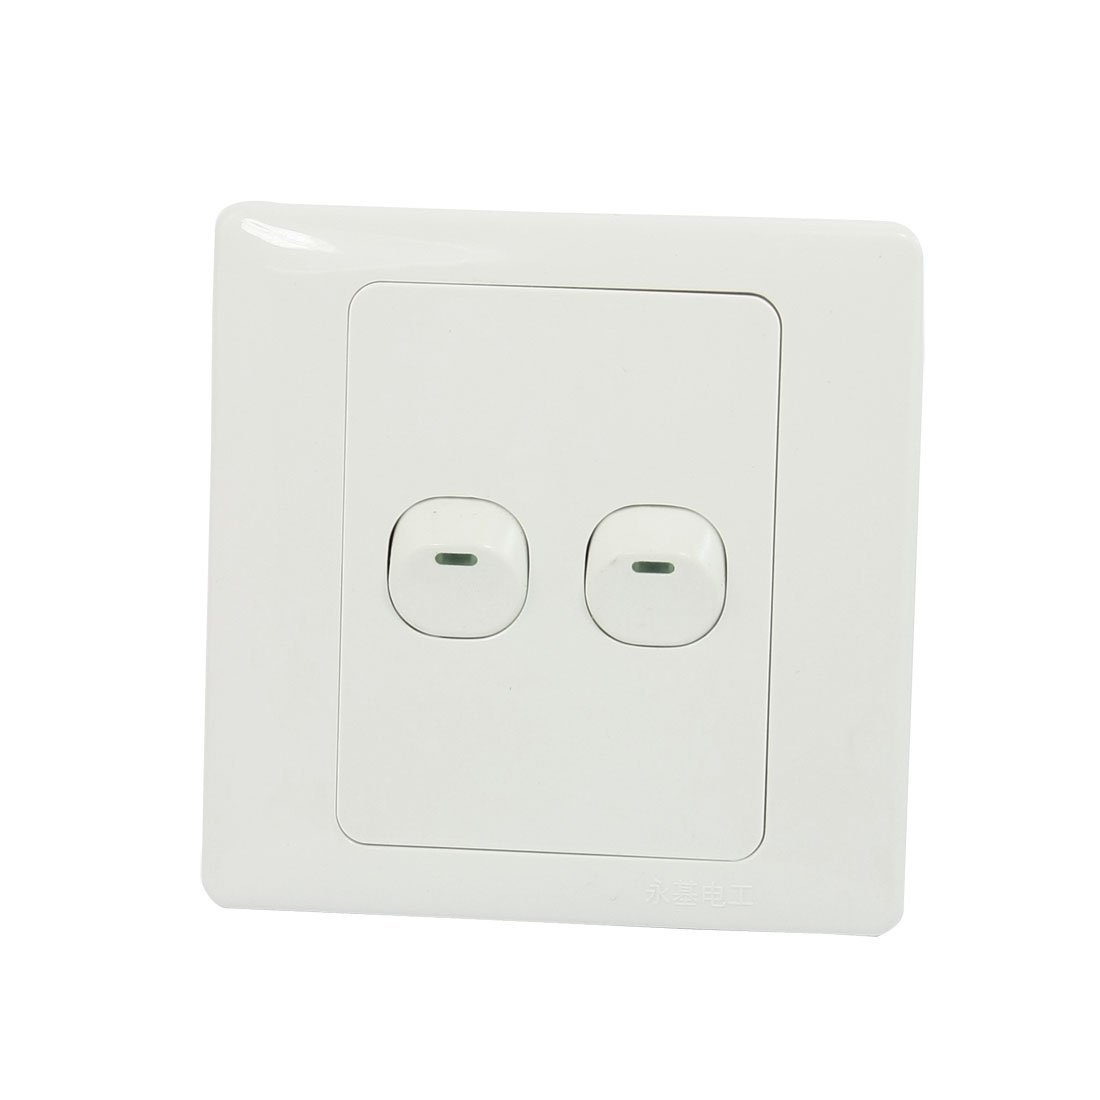 Cheap Office Light Switch, find Office Light Switch deals on line at ...